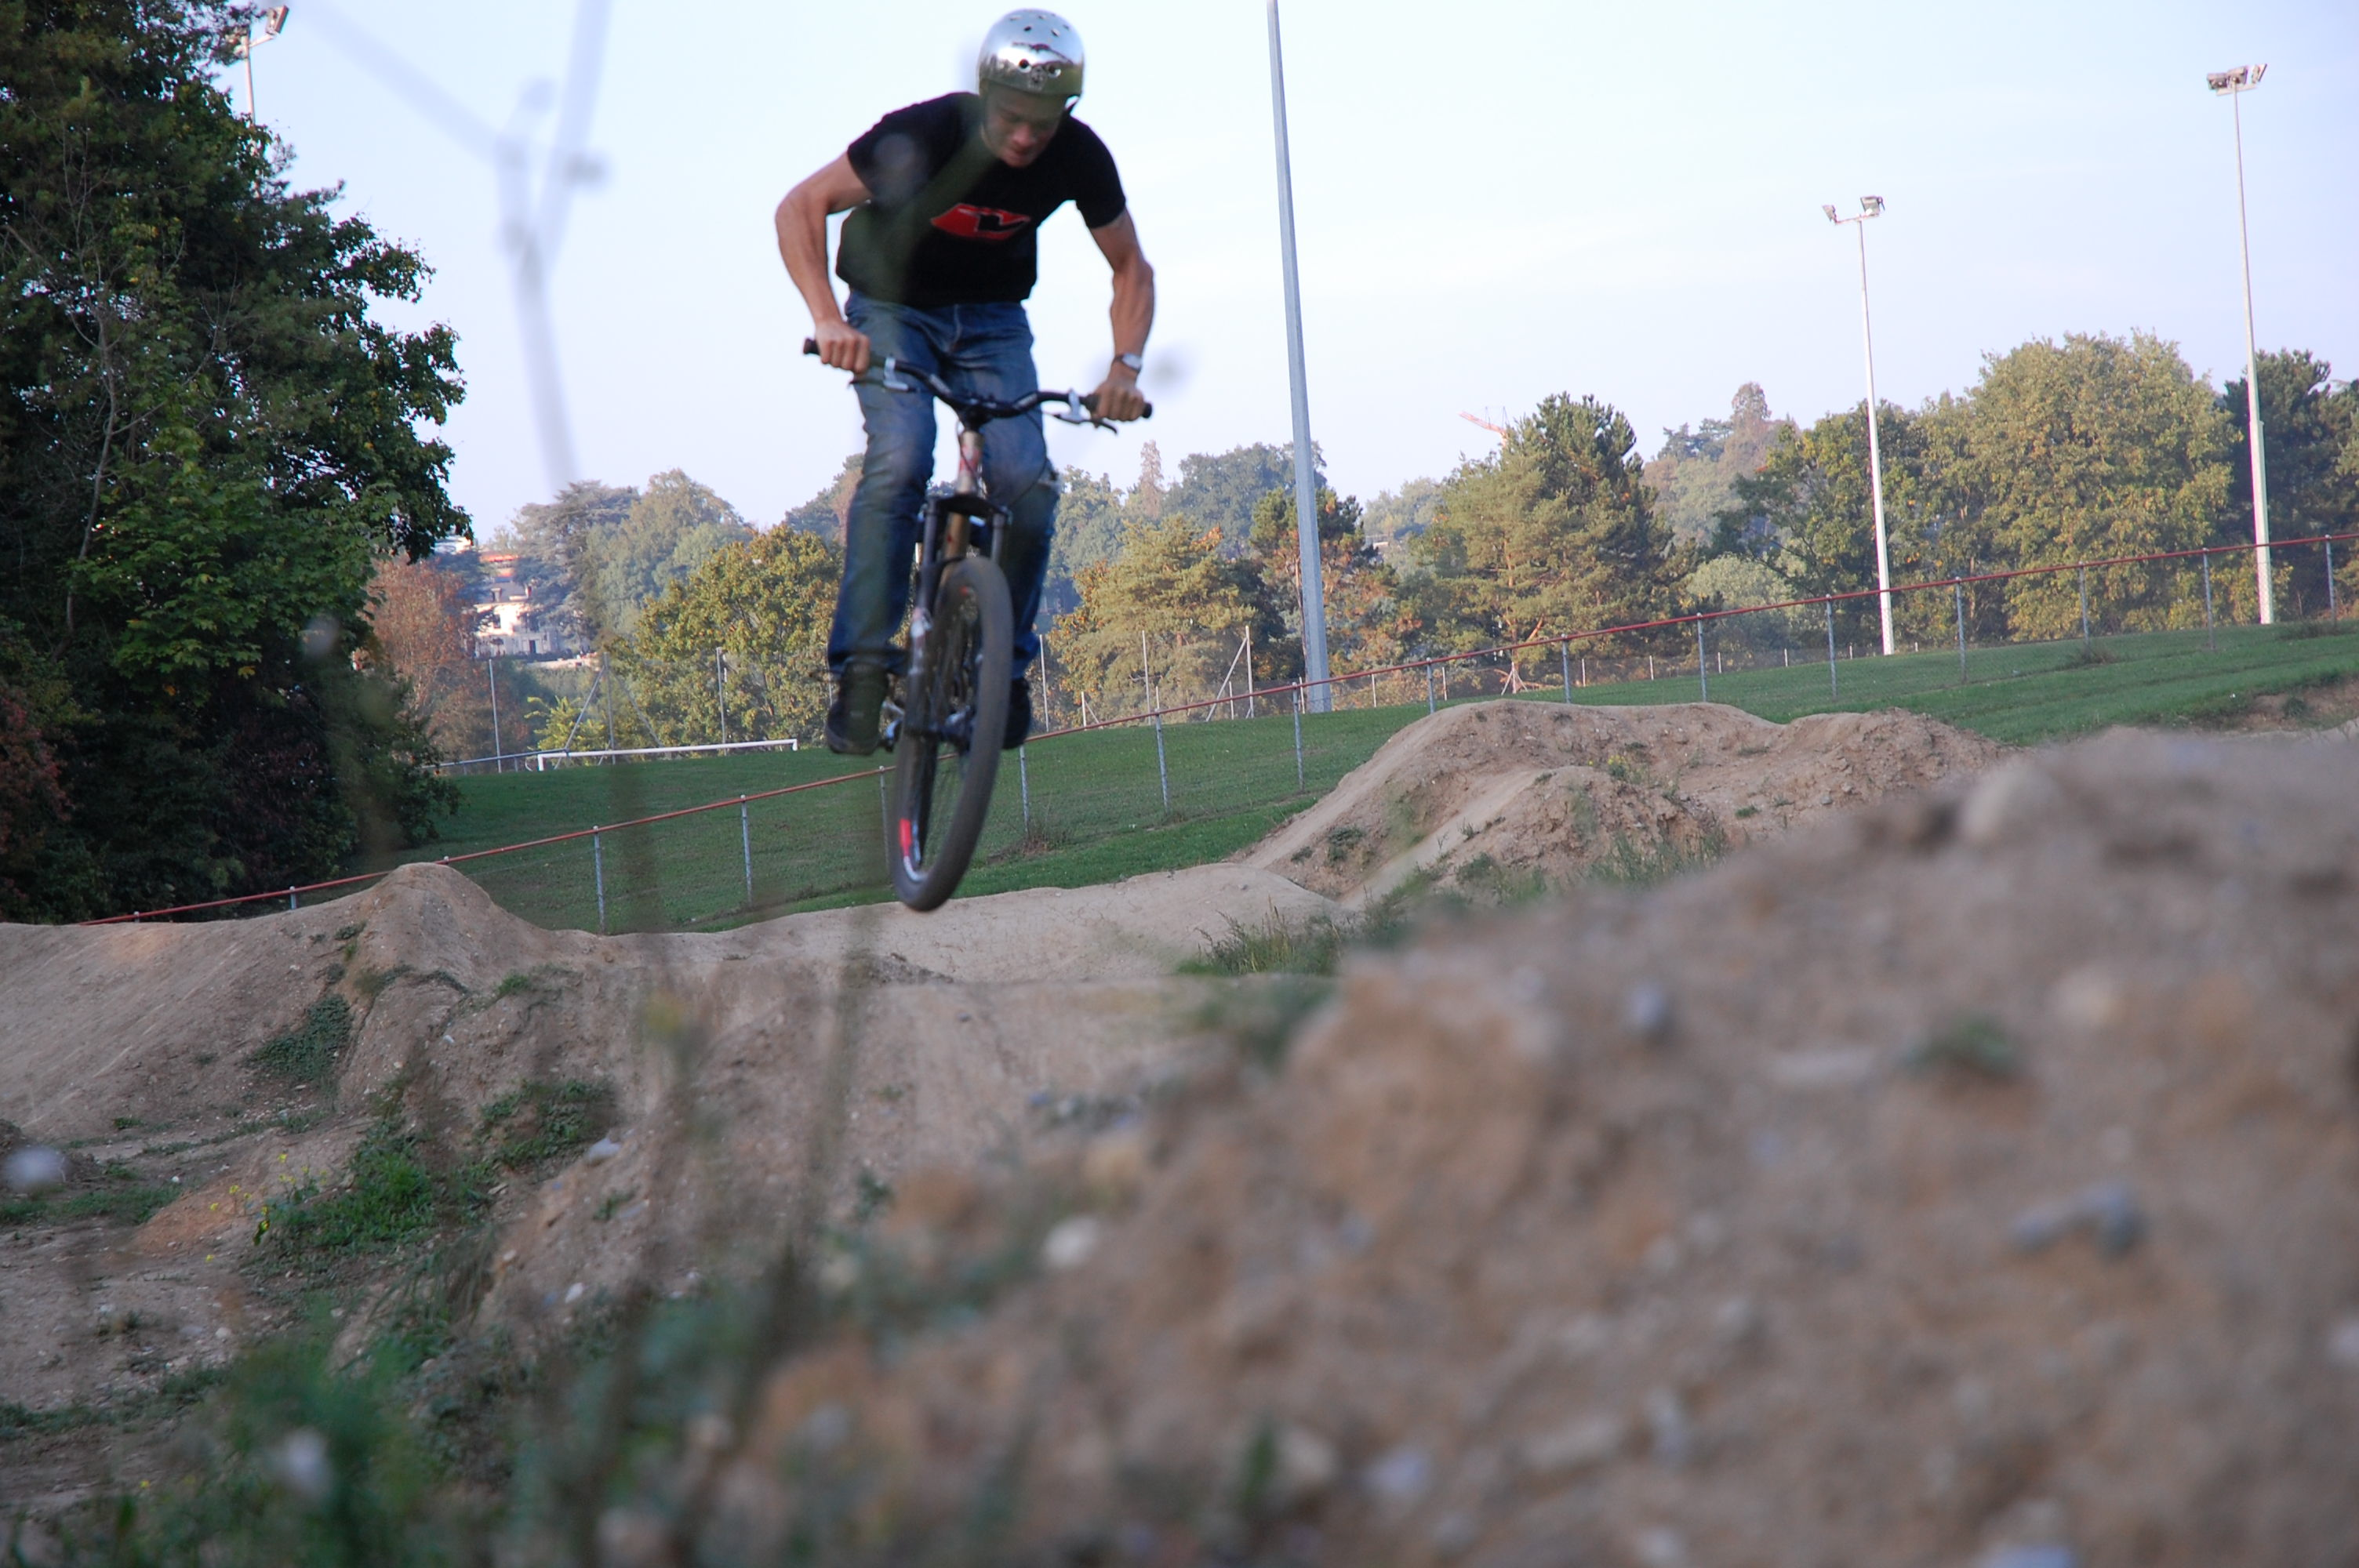 Dirt & slopestyle